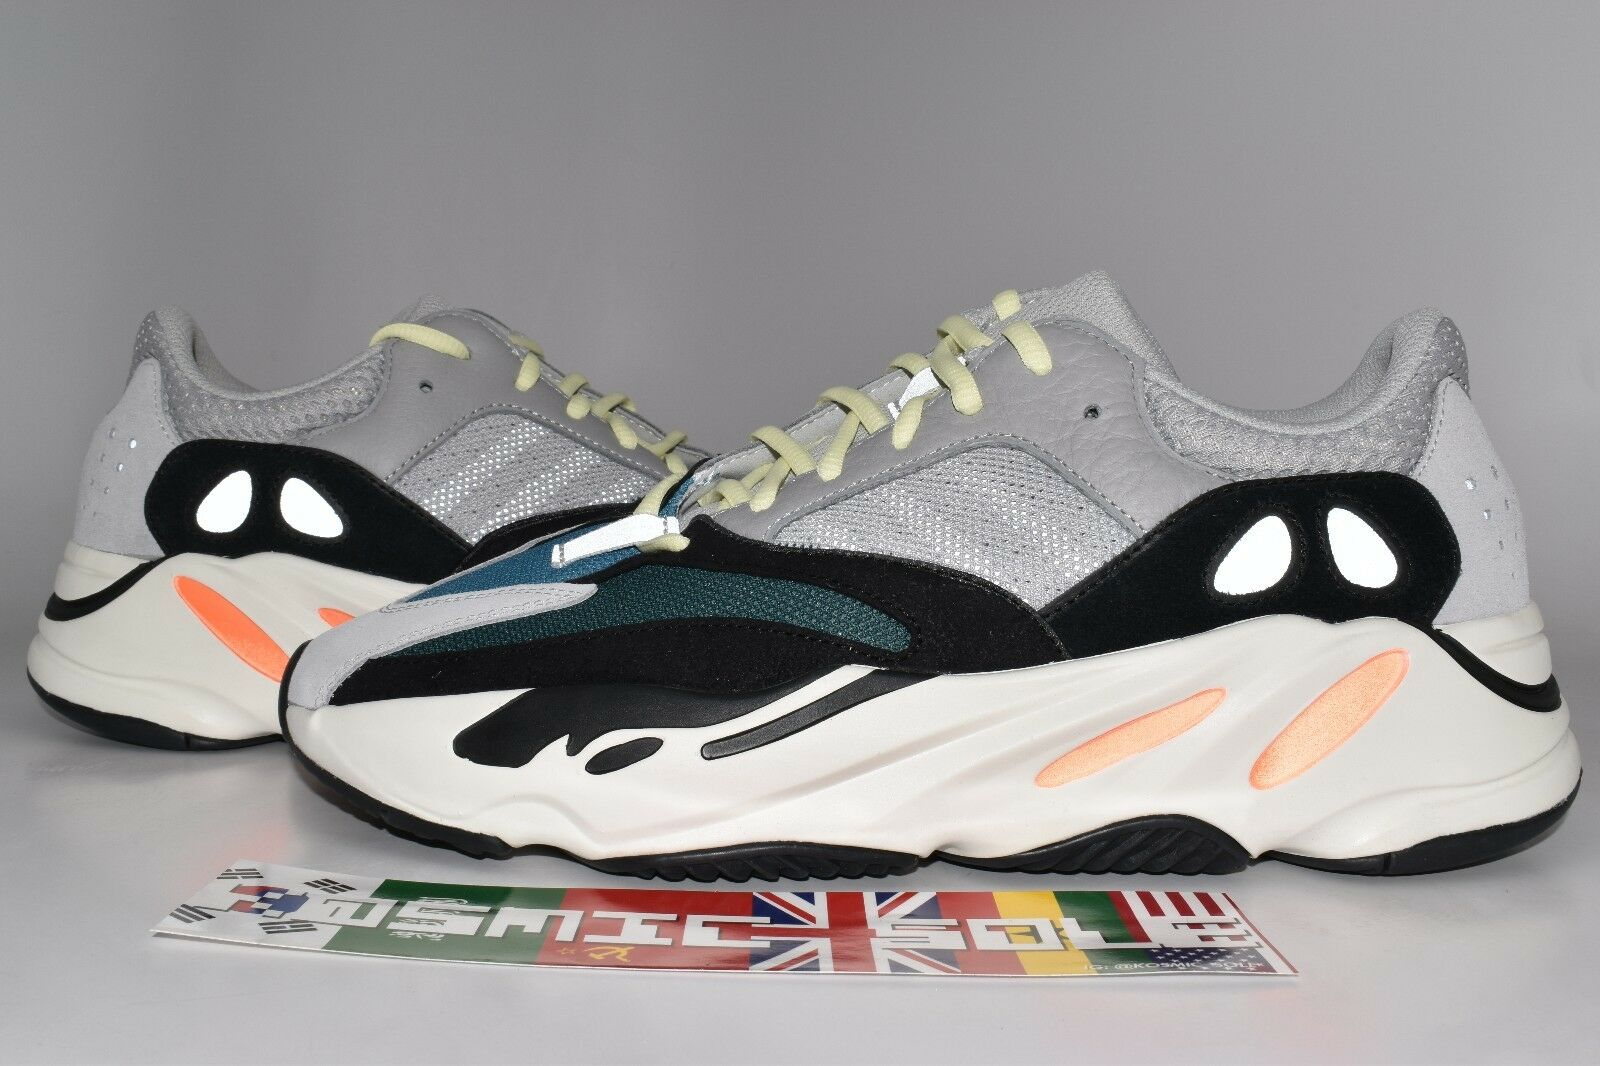 Adidas Yeezy Boost 700 Wave Runner B75571 Size Size B75571 8.5 a97c47